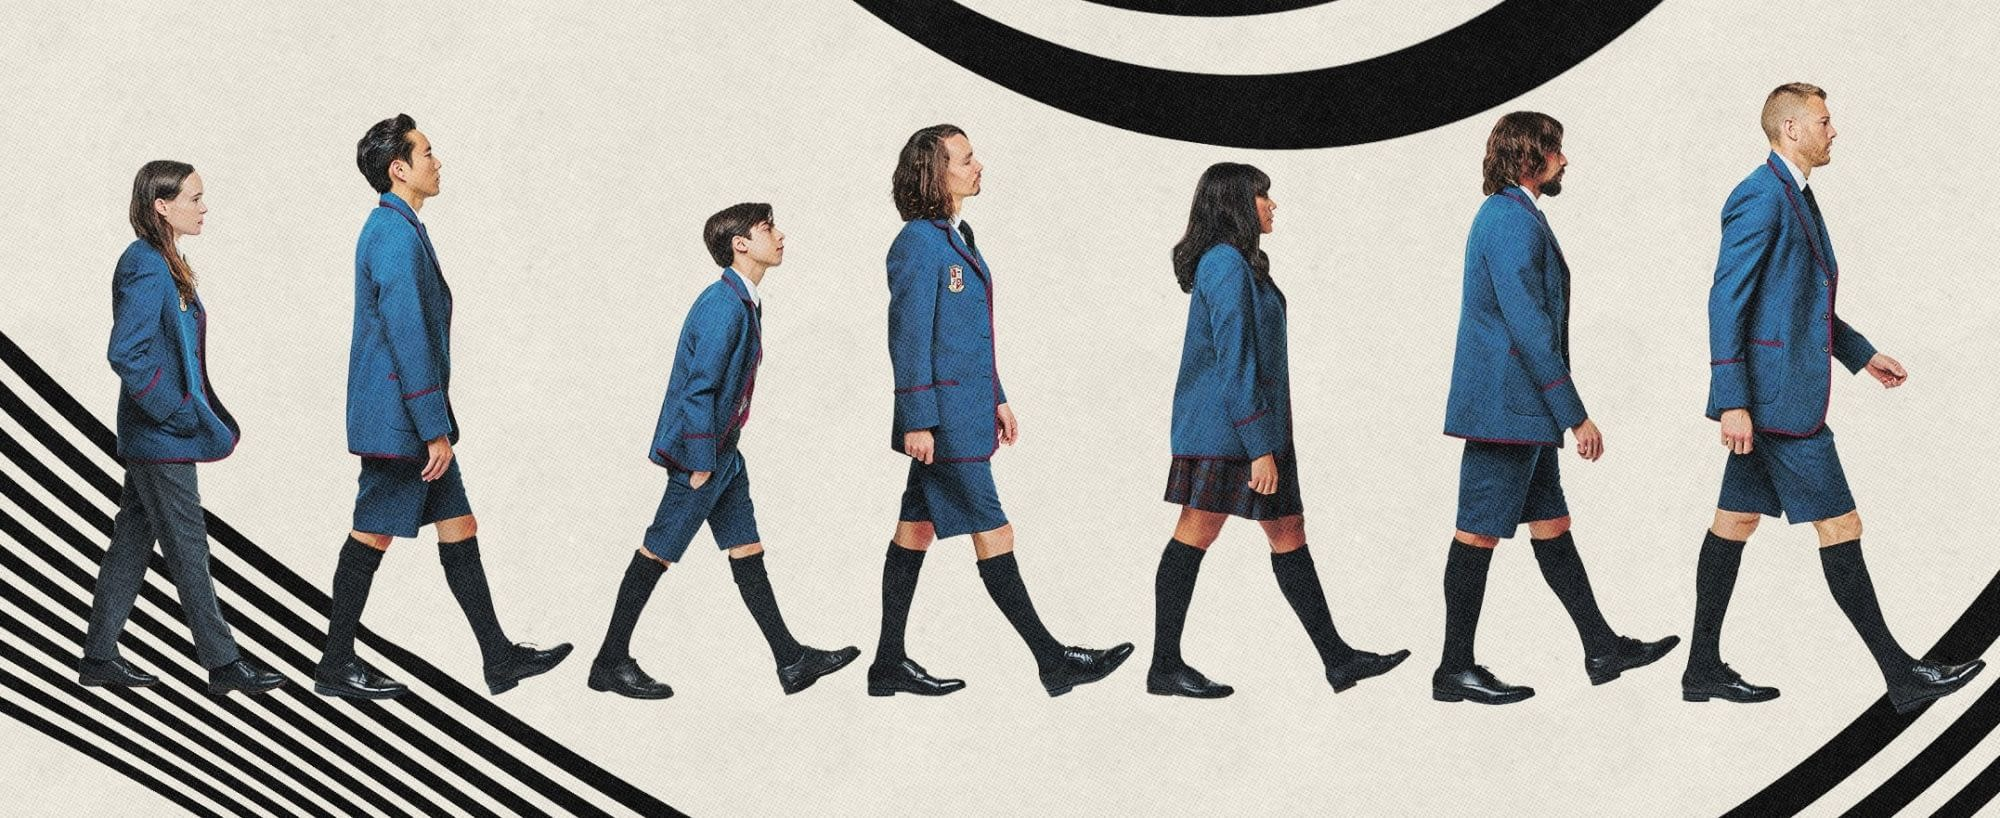 The countdown to The Umbrella Academy season 2 continues (Image: Netflix)